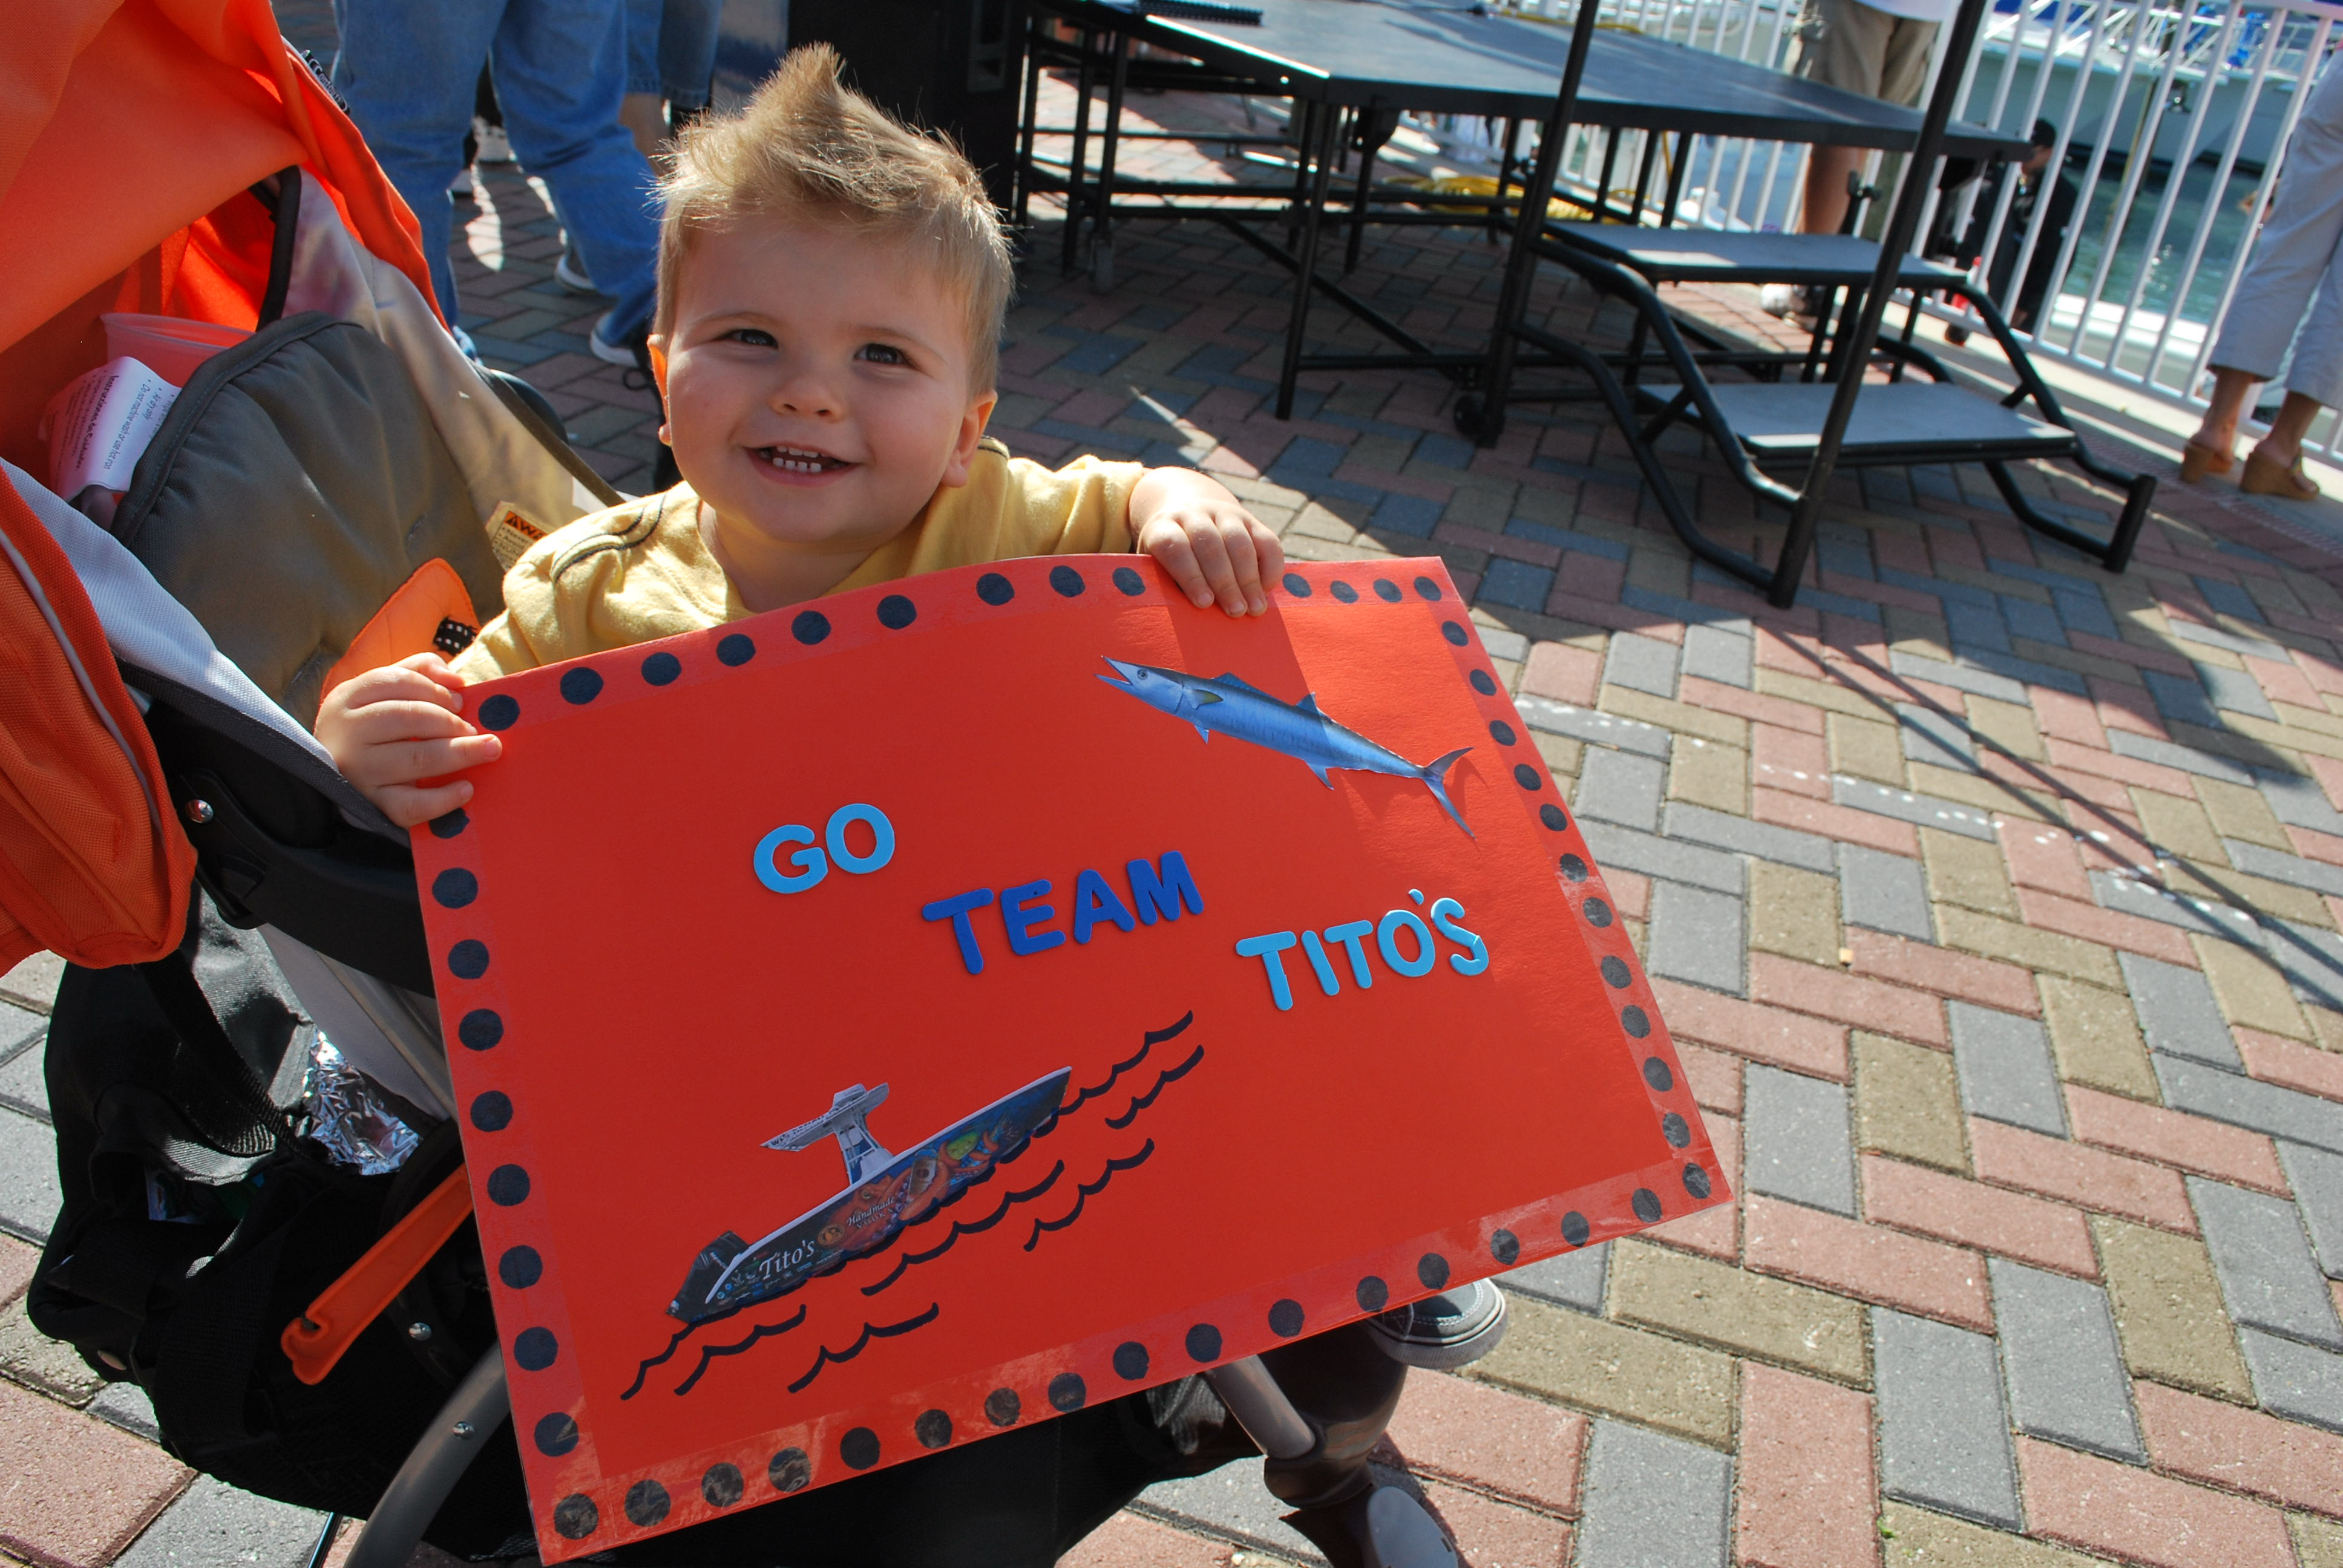 Jace is cheering on Team Tito's SKA fishing team